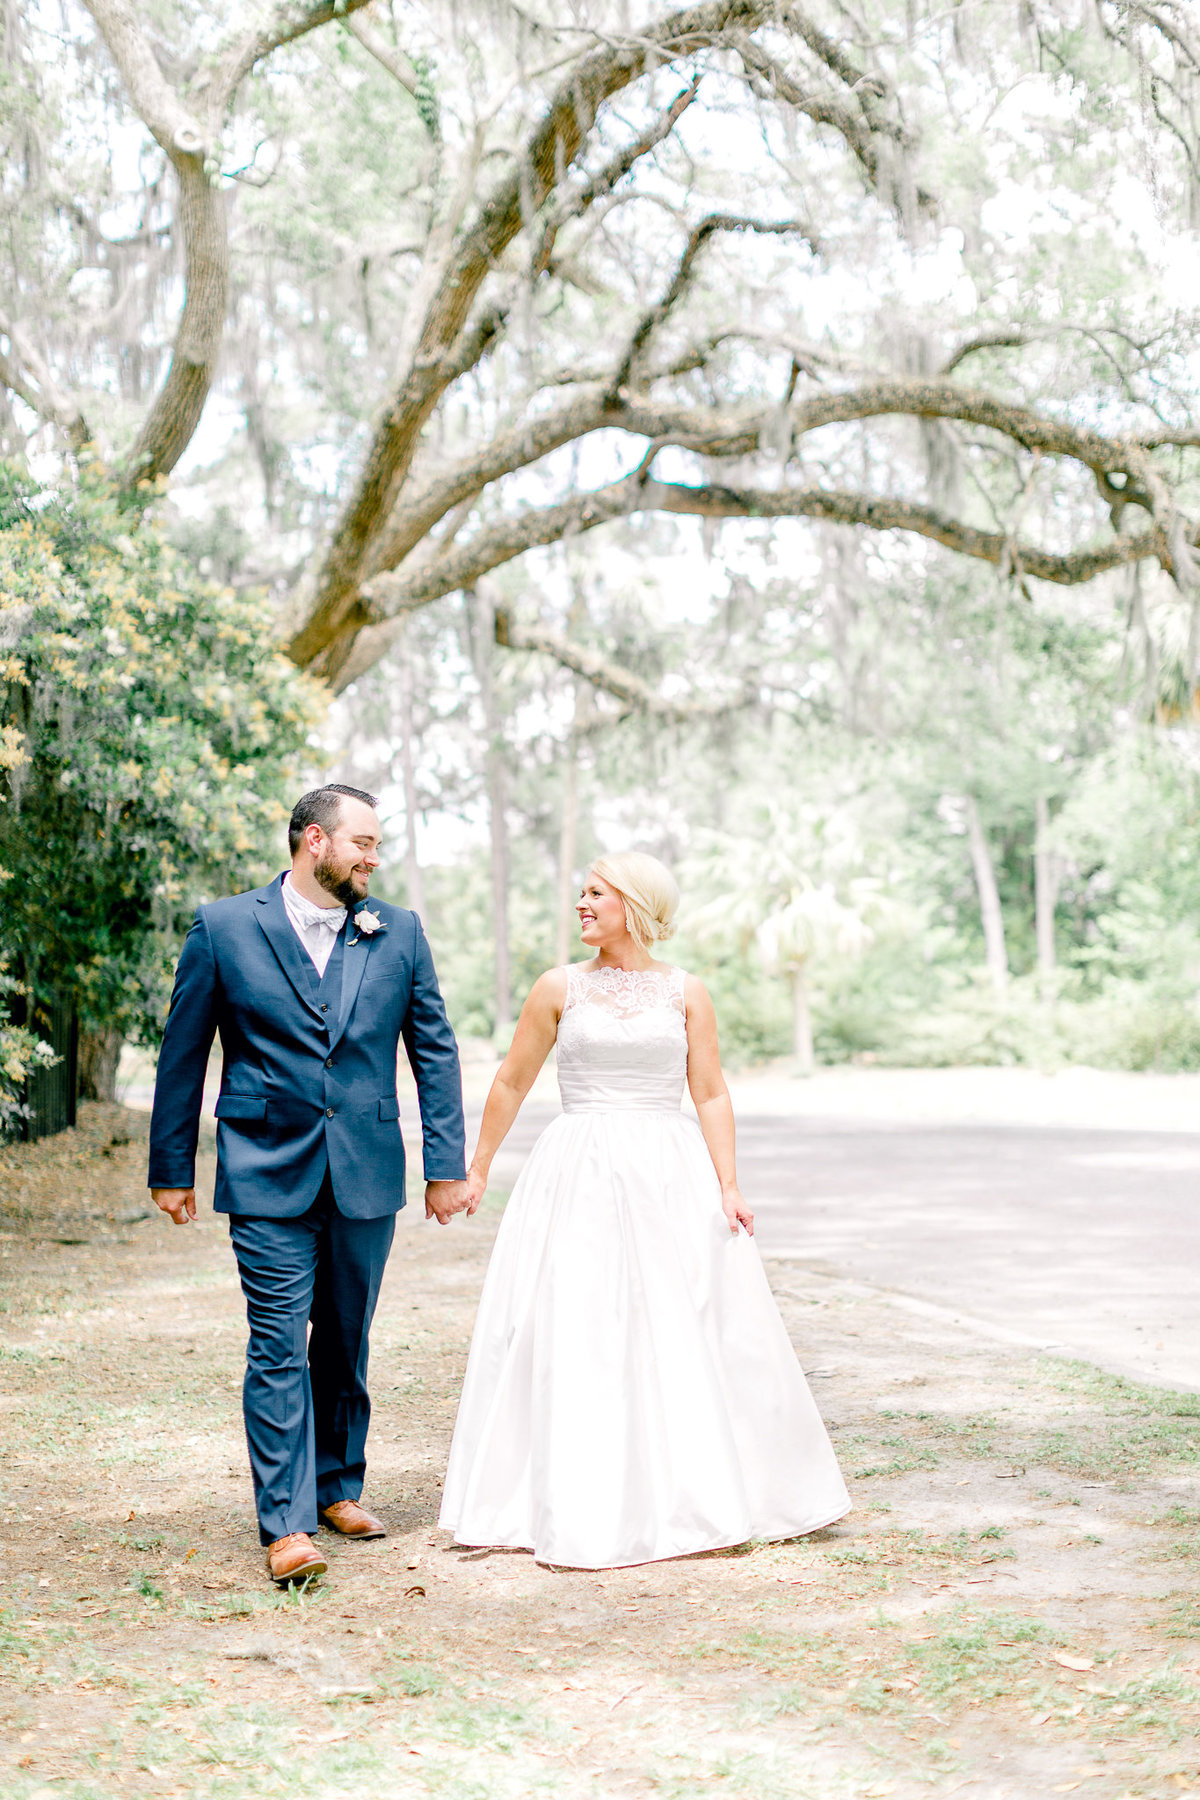 Savannah-Georgia-Wedding-Photographer-Holly-Felts-Photography-Wilmon-Wedding-81